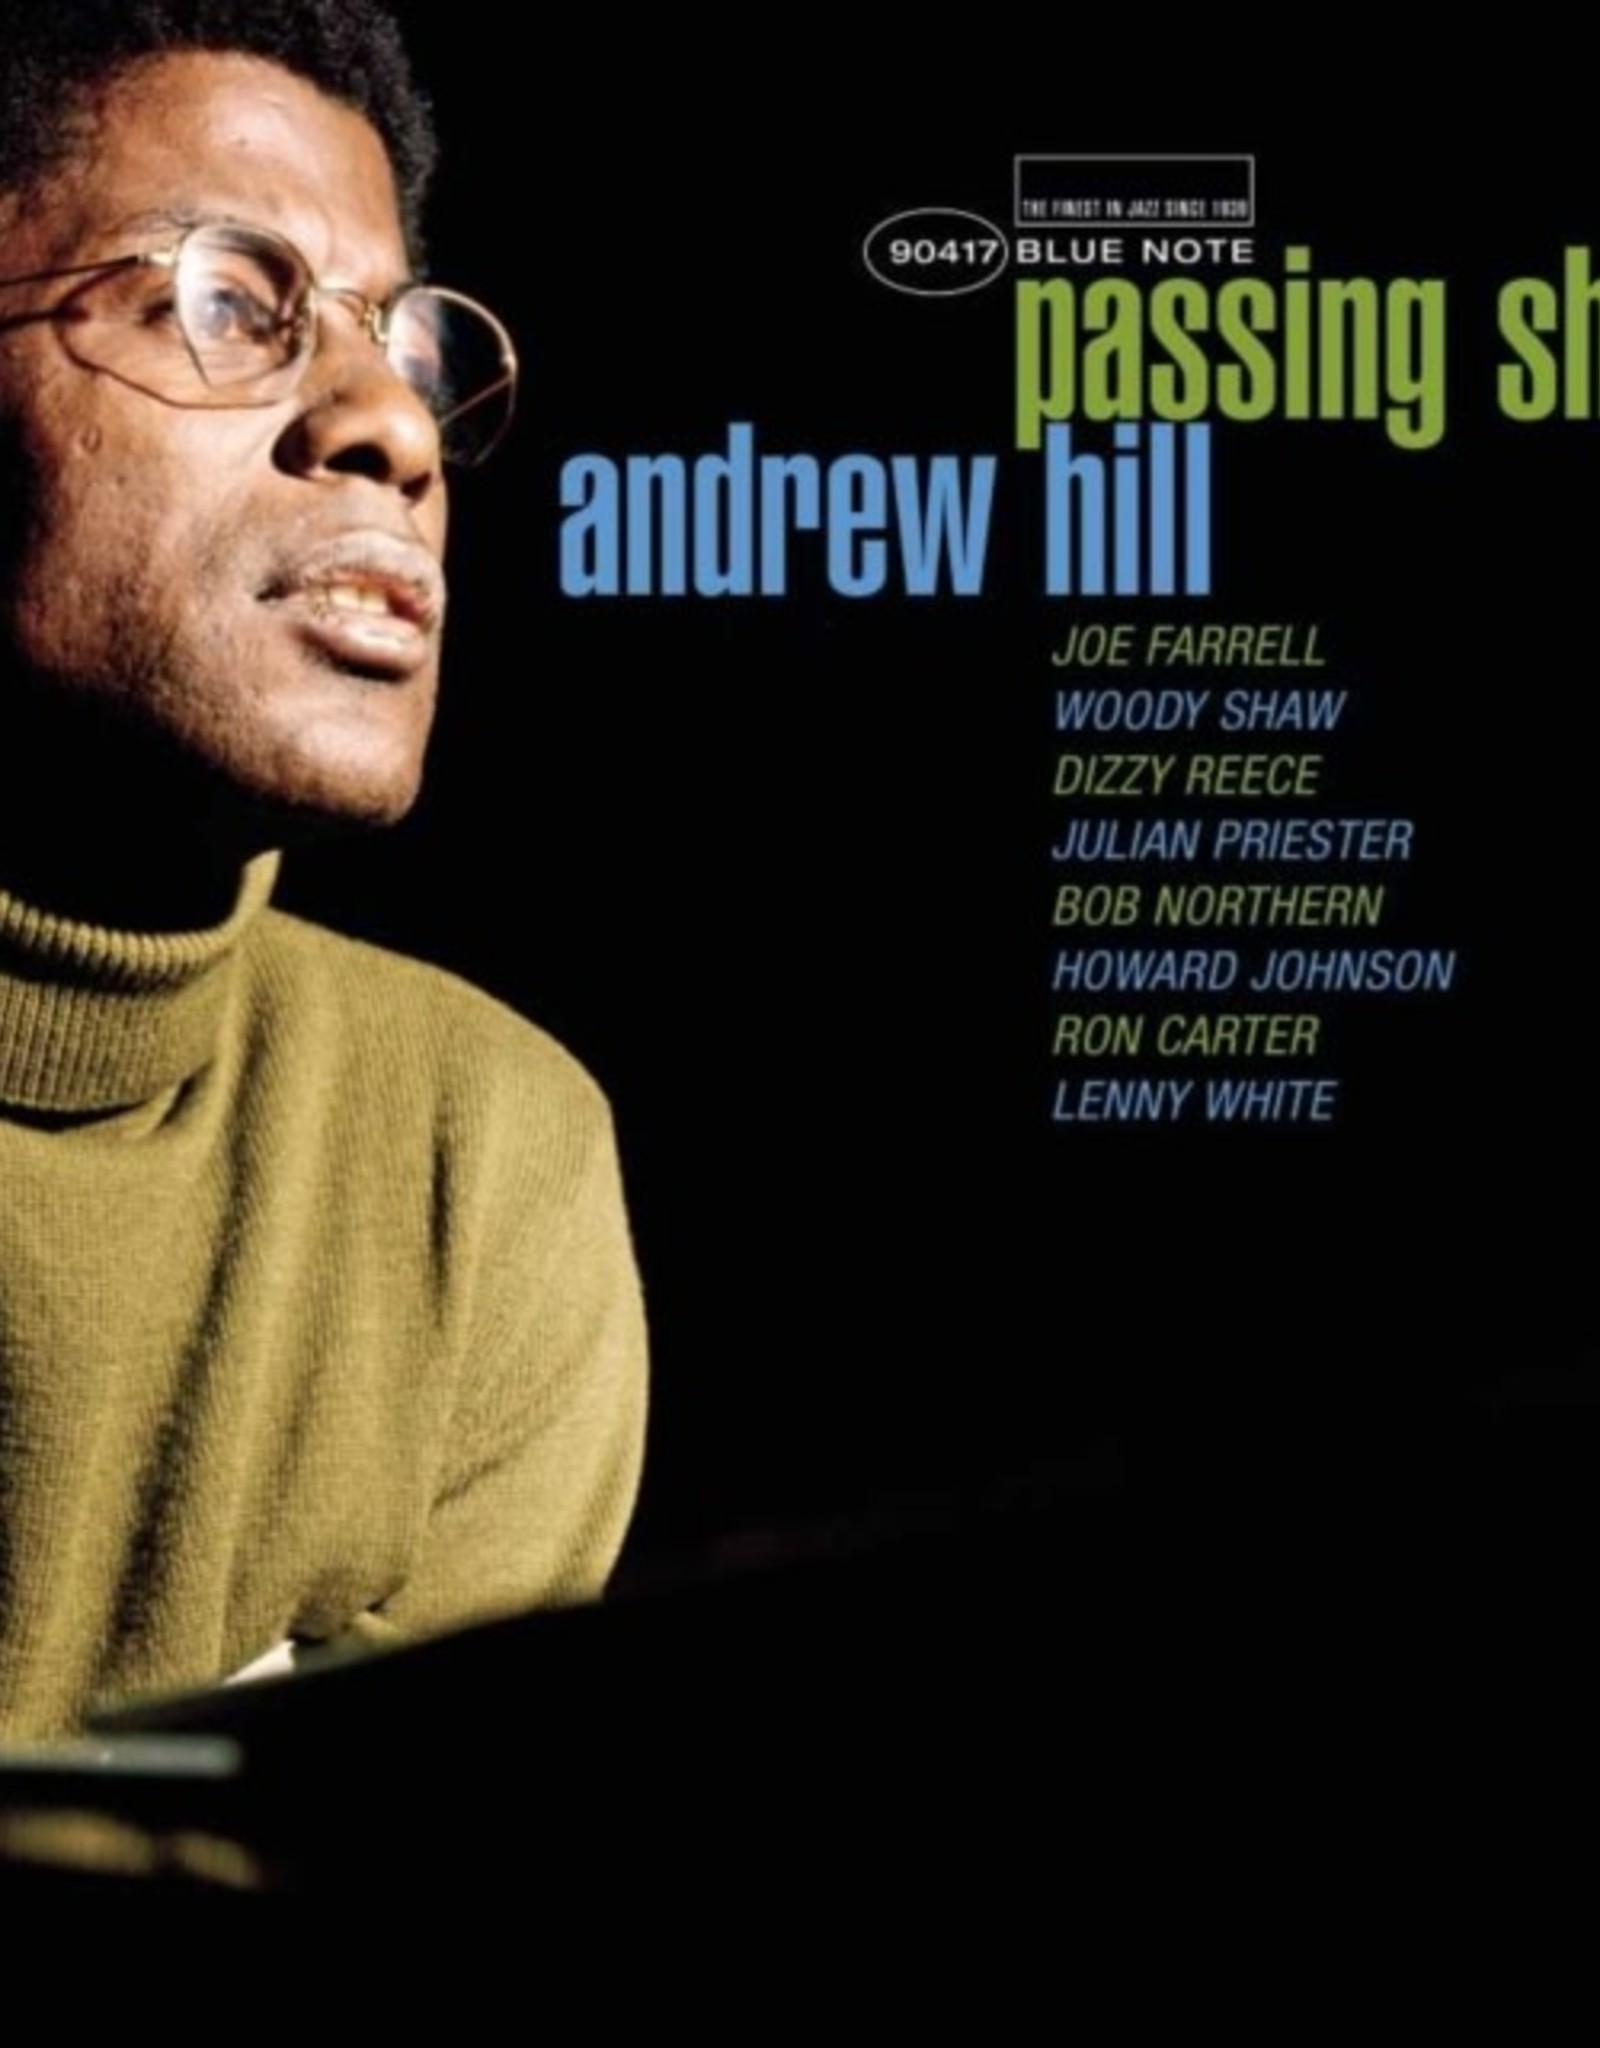 Andrew Hill - Passing Ships (Analog Master)